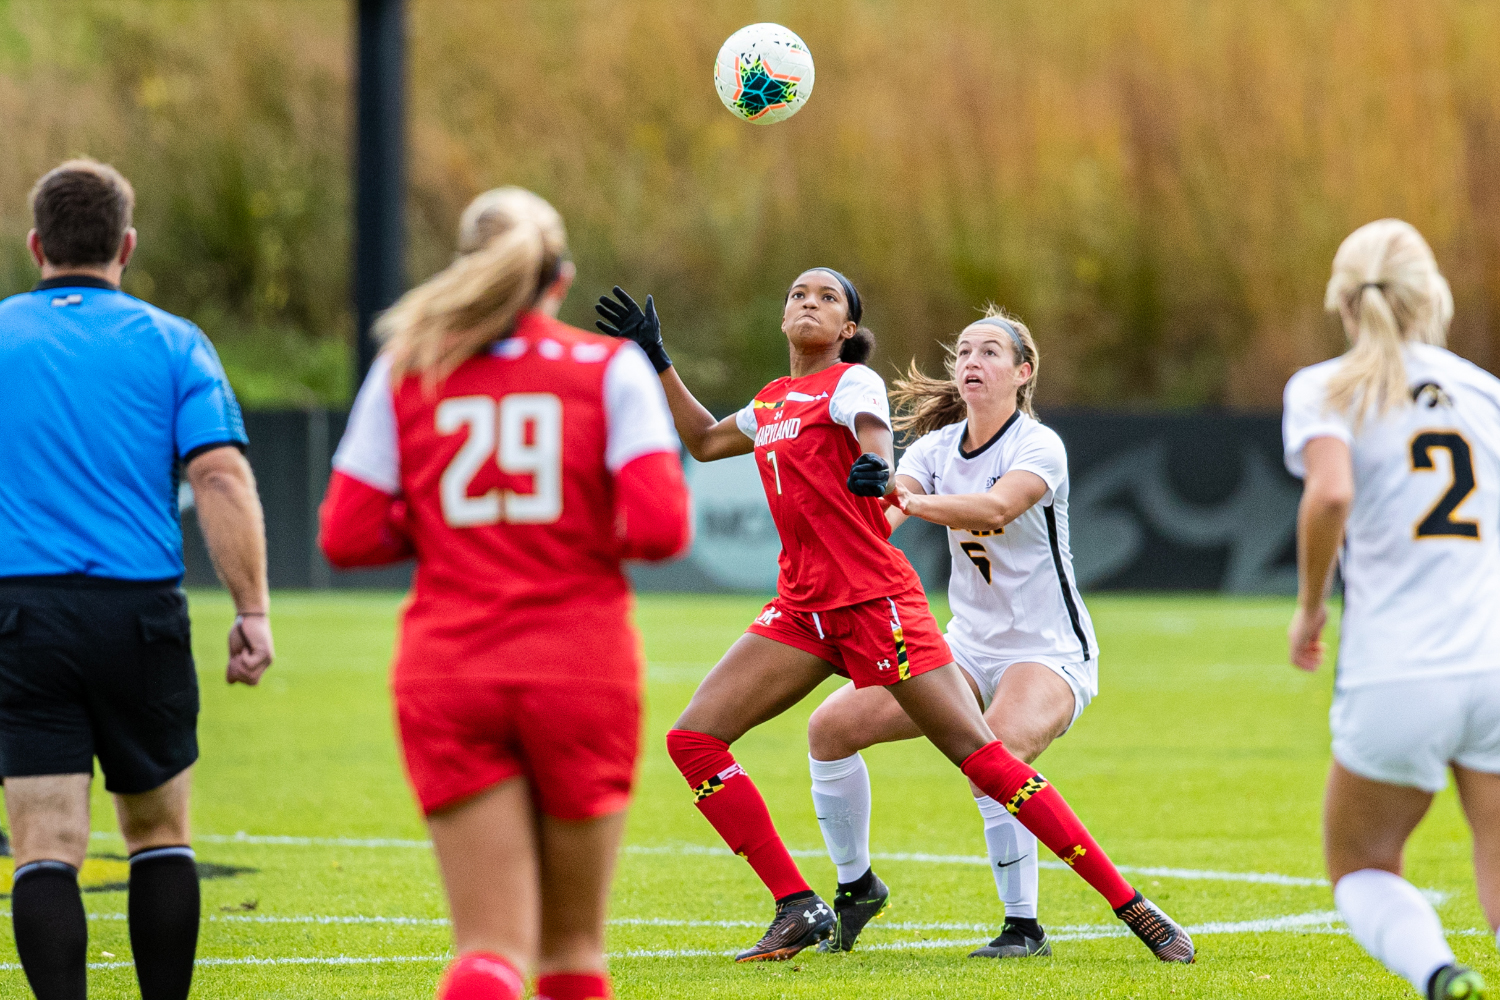 Iowa defender Riley Whitaker and Maryland forward Alyssa Poarch fight for the ball during a women's soccer match between Iowa and Maryland at the Iowa Soccer Complex on Sunday, October 13, 2019. The Hawkeyes shut out the Terrapins, 4-0.